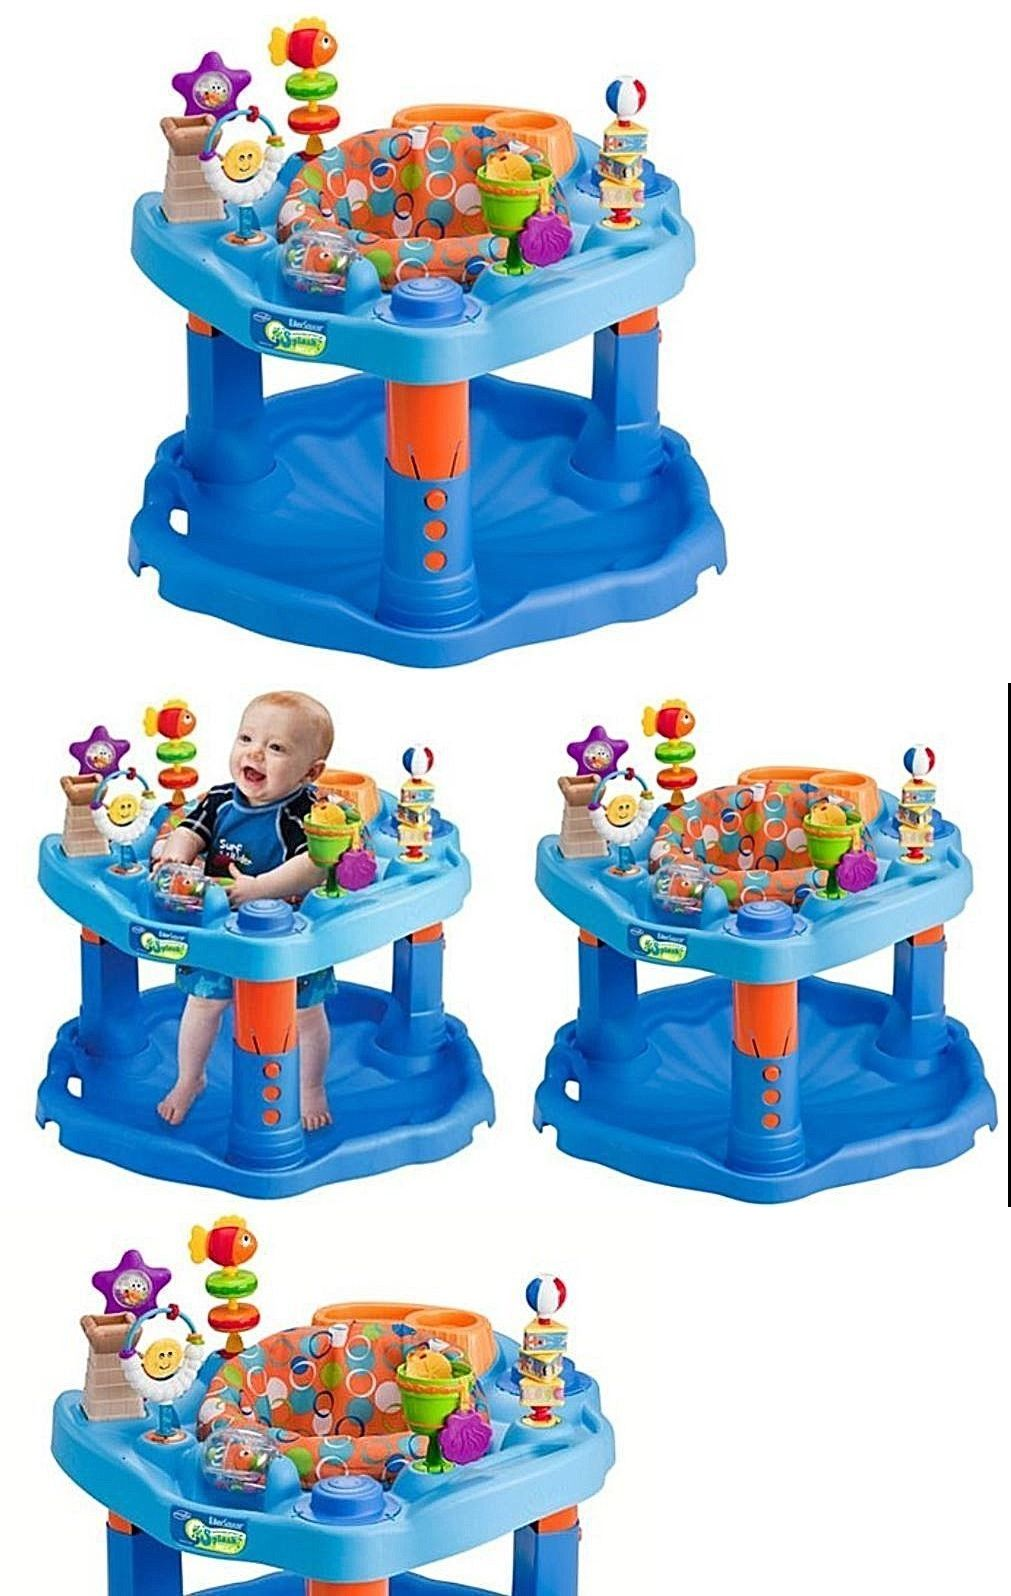 5b3733b59 Activity Centers 20413  Evenflo Baby Exersaucer Activity Center Toy ...